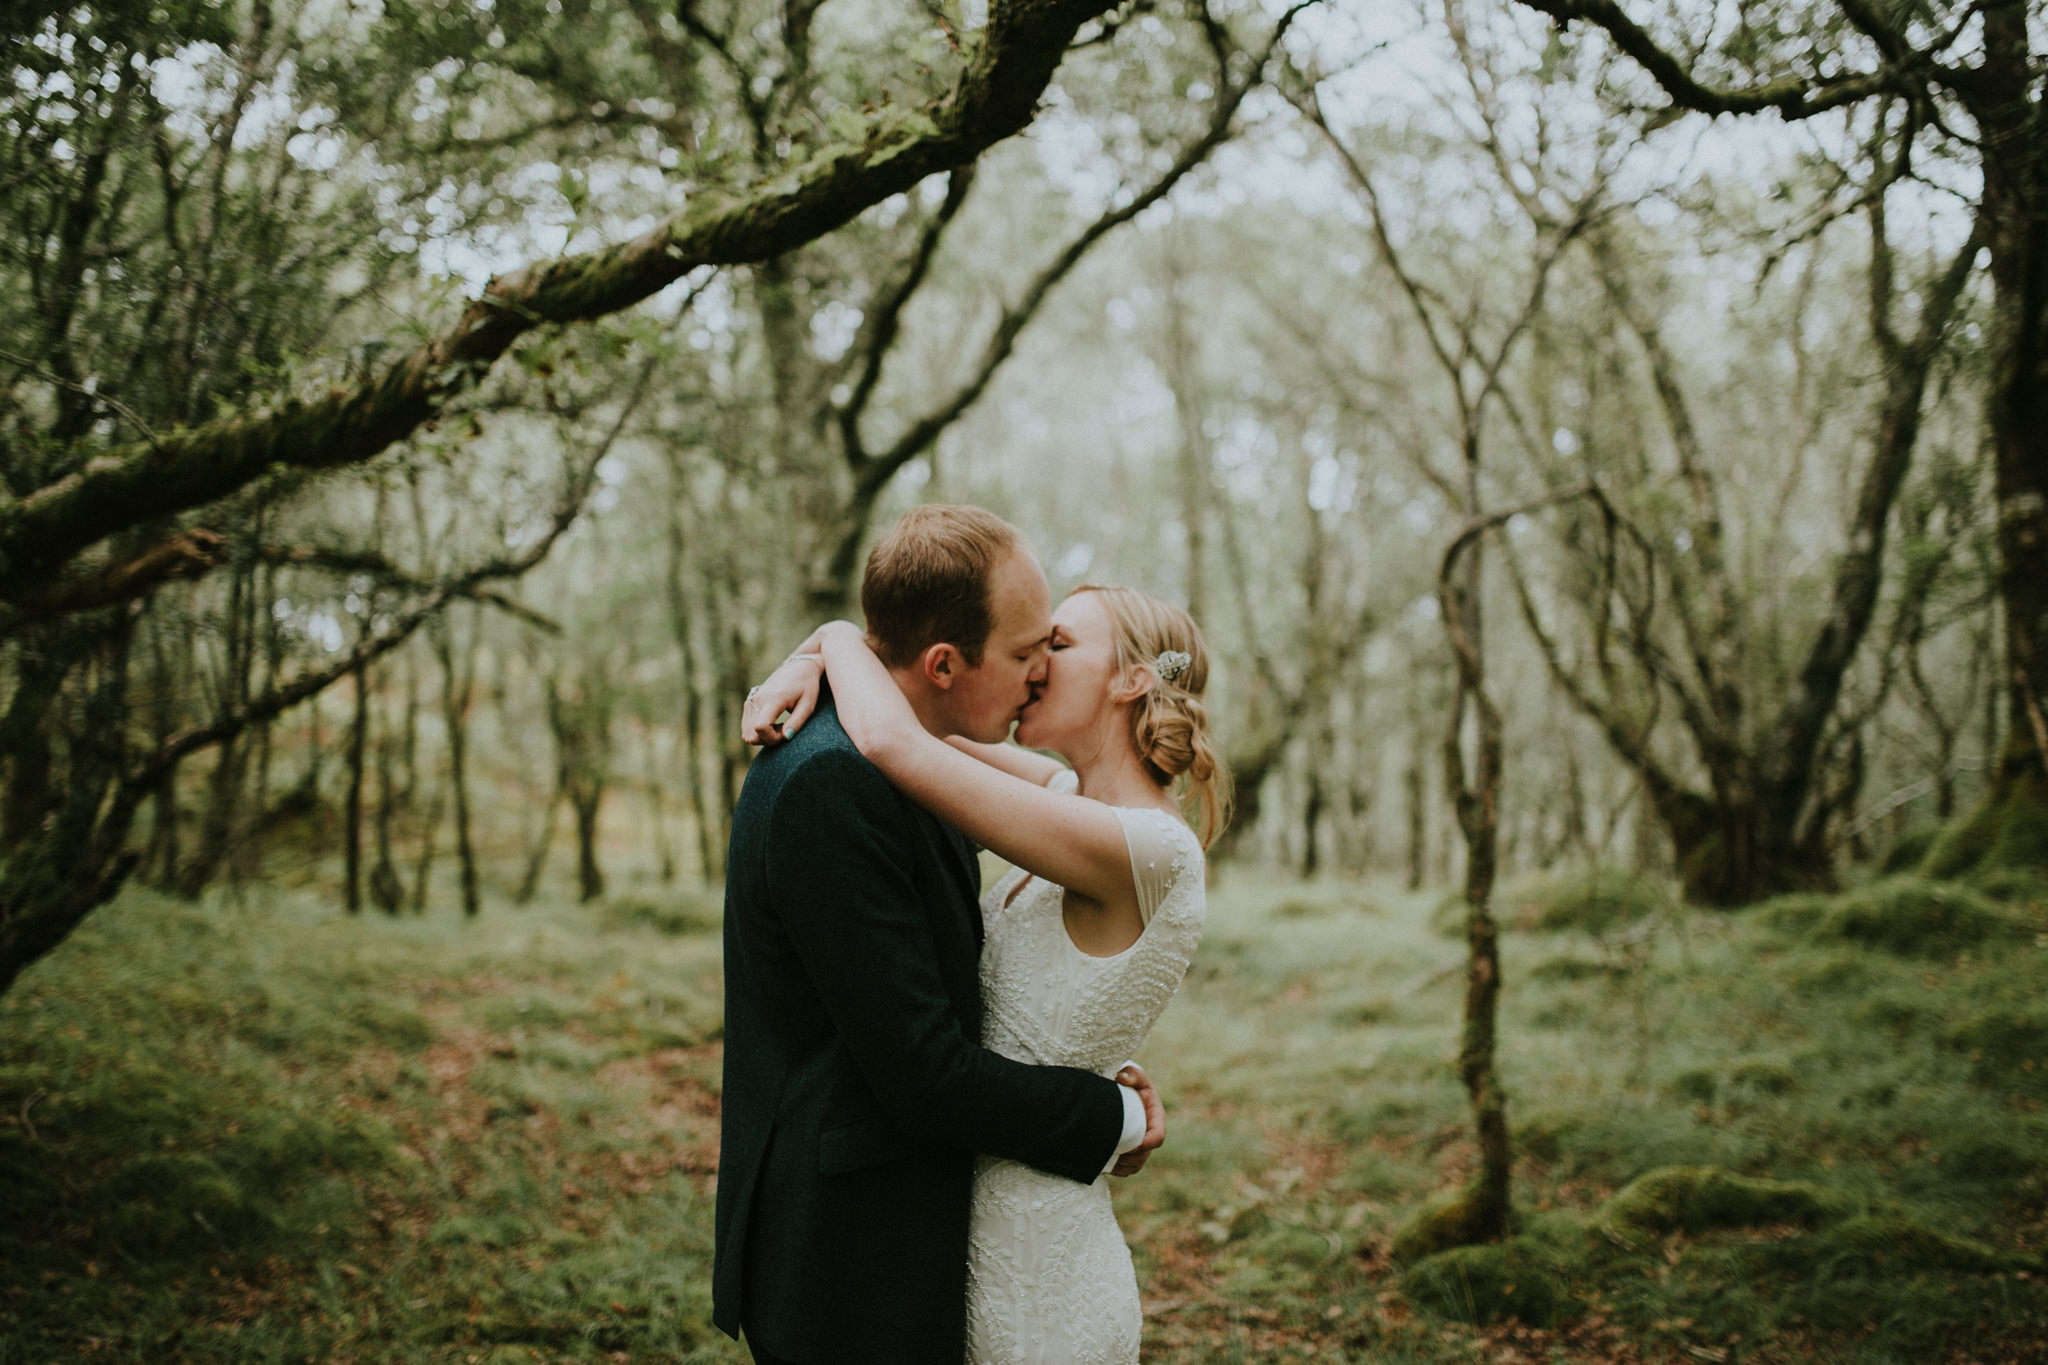 The wedding couple is kissing each other in the forest.